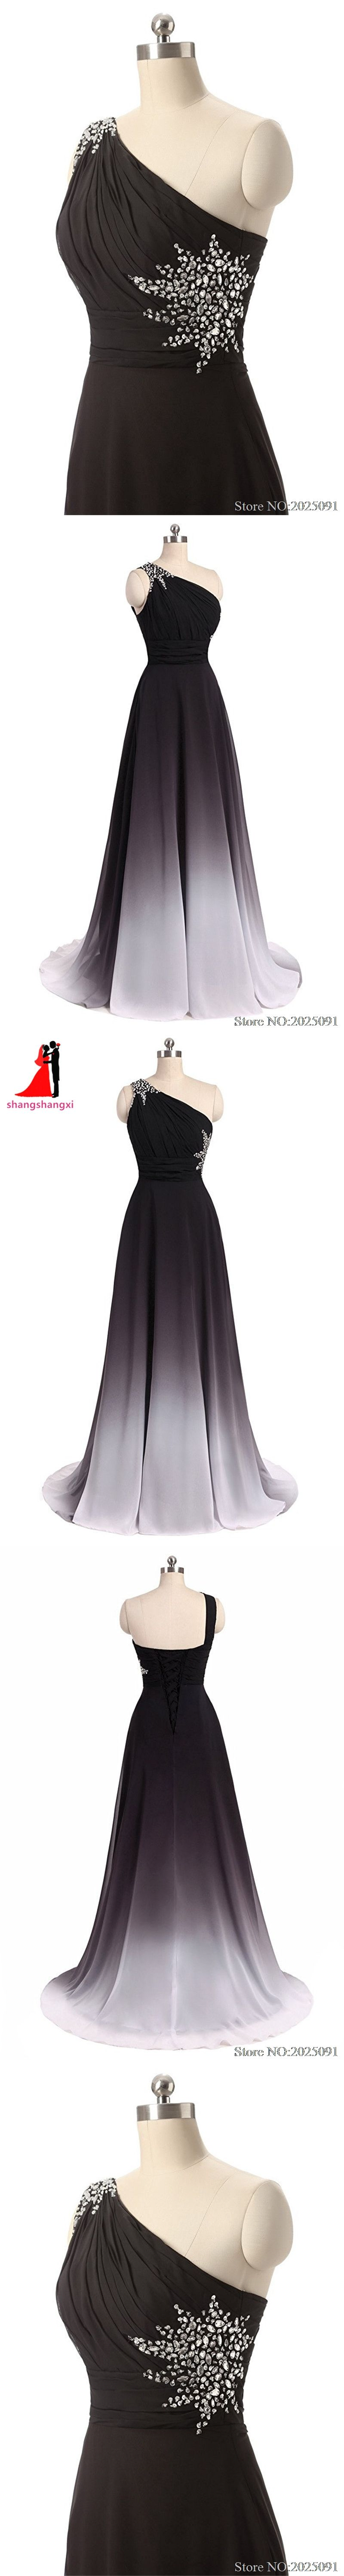 New one shoulder ombre long black white gradient chiffon evening